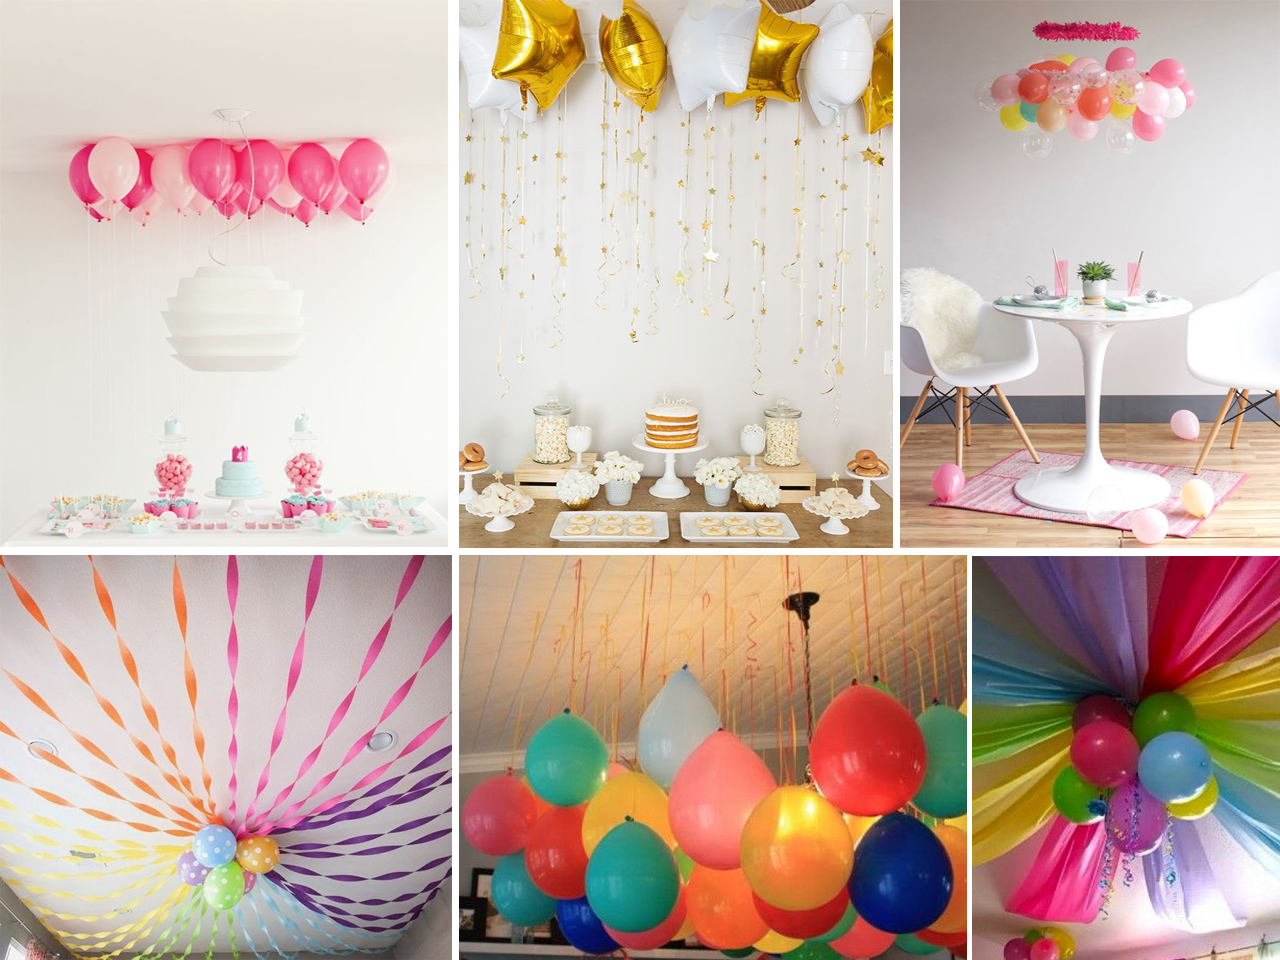 Descubre c mo decorar con globos con estas fant sticas ideas - Decoracion con fotos en paredes ...